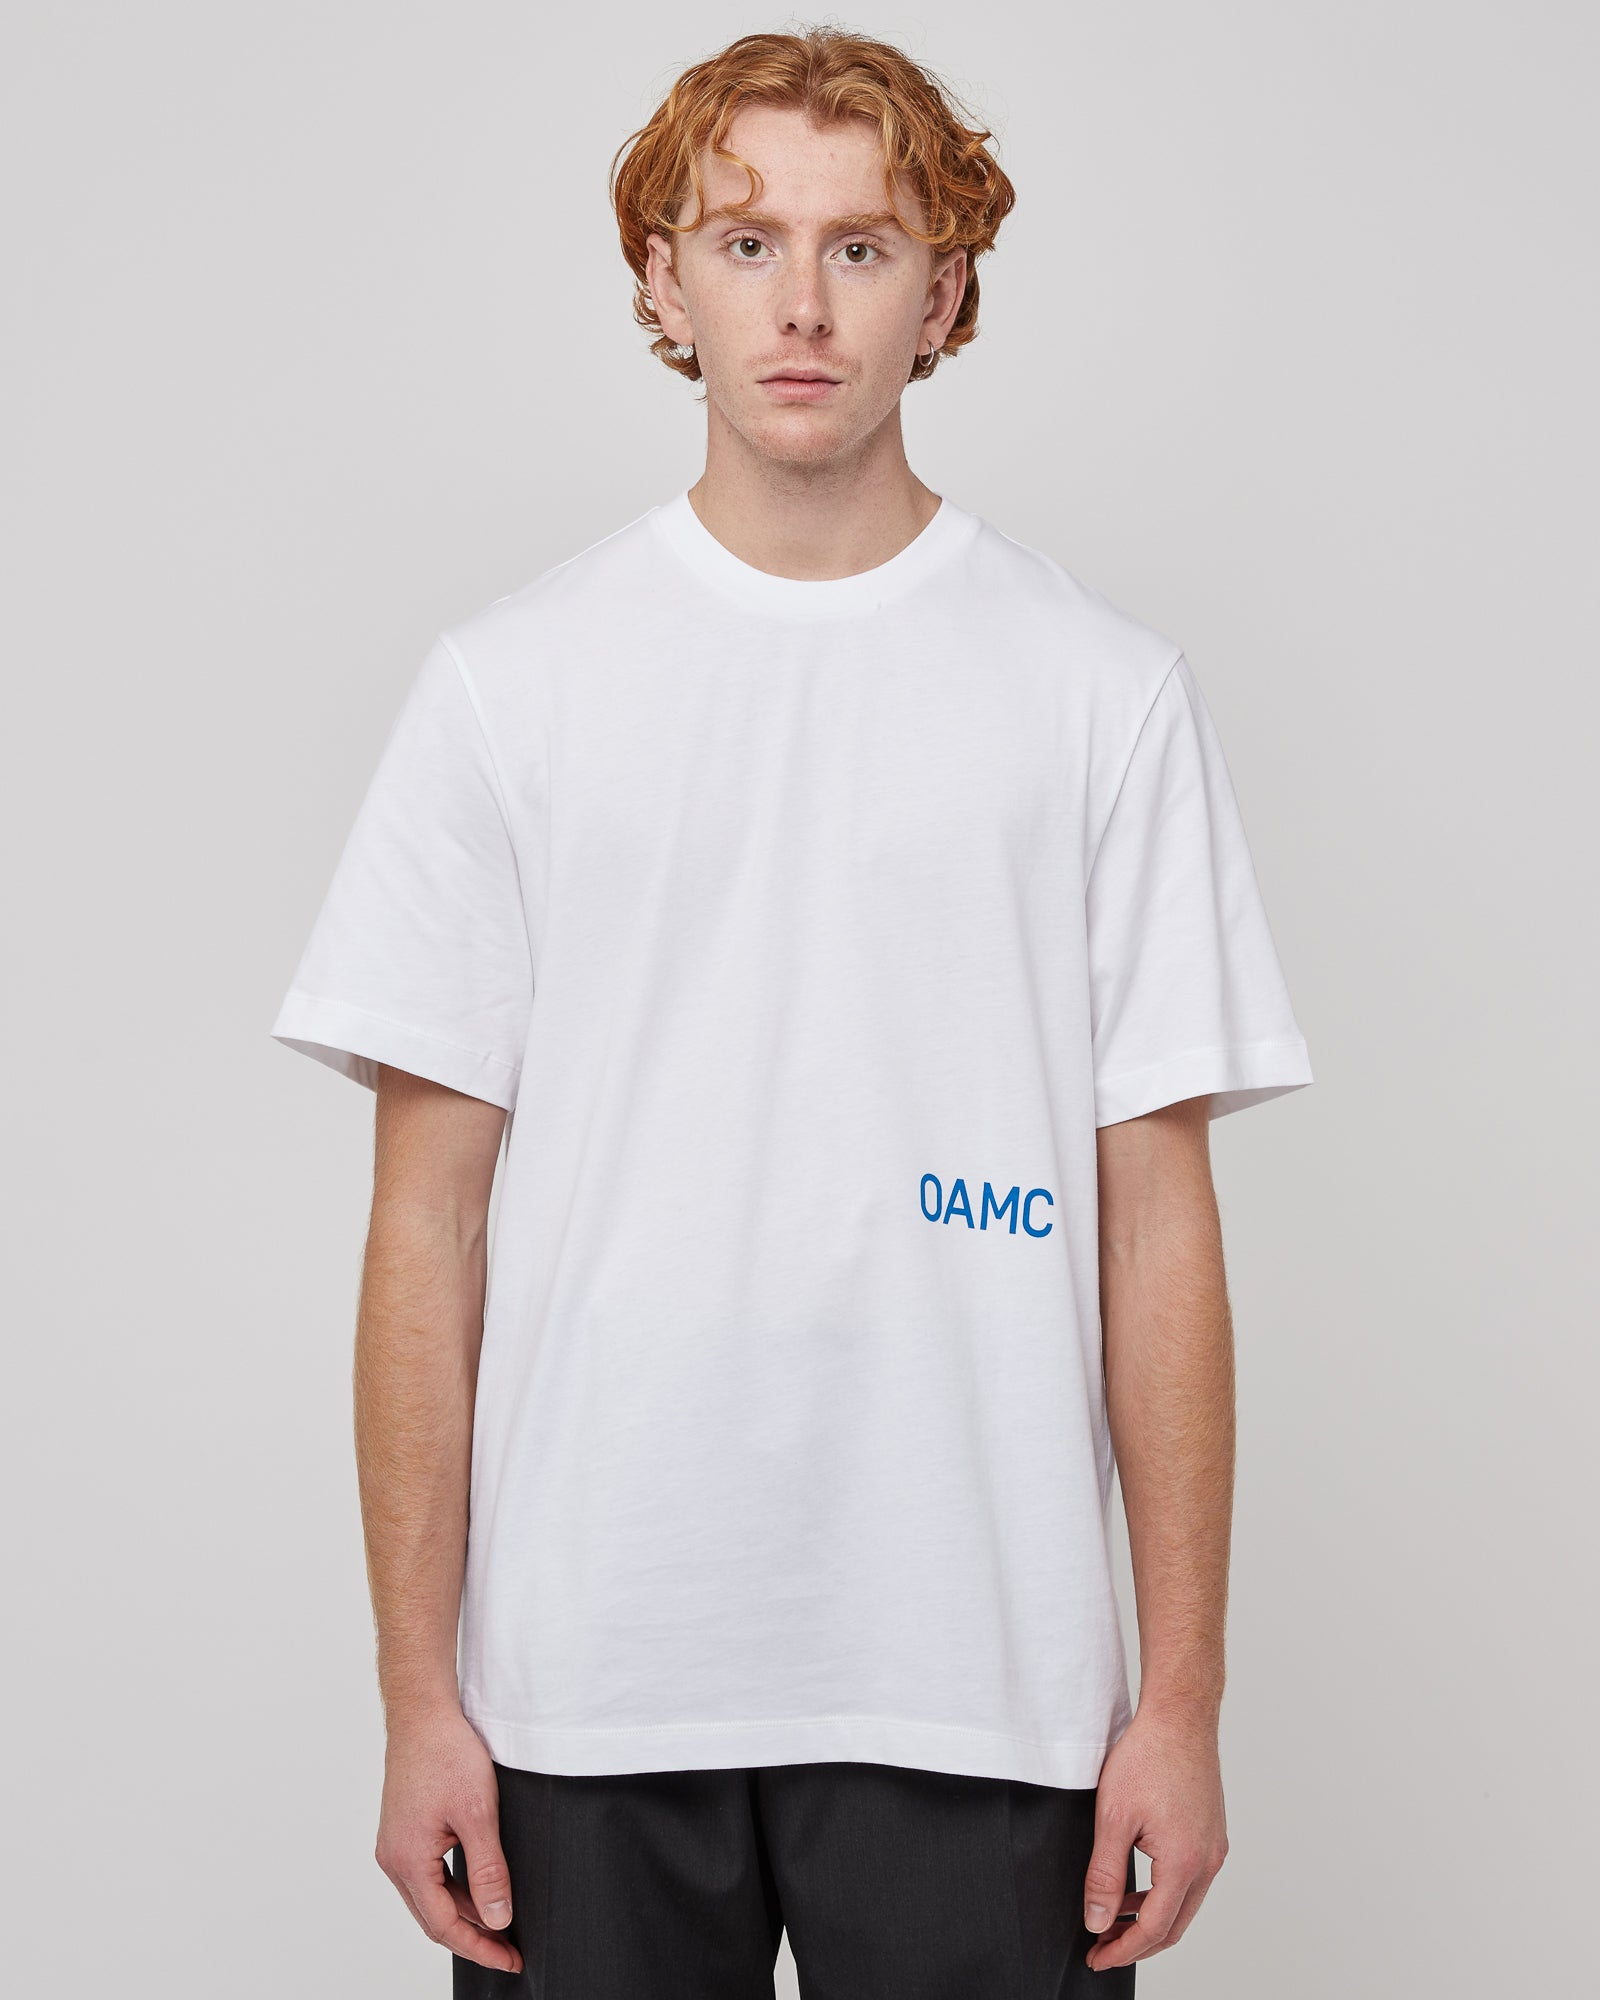 Henry T-Shirt in White